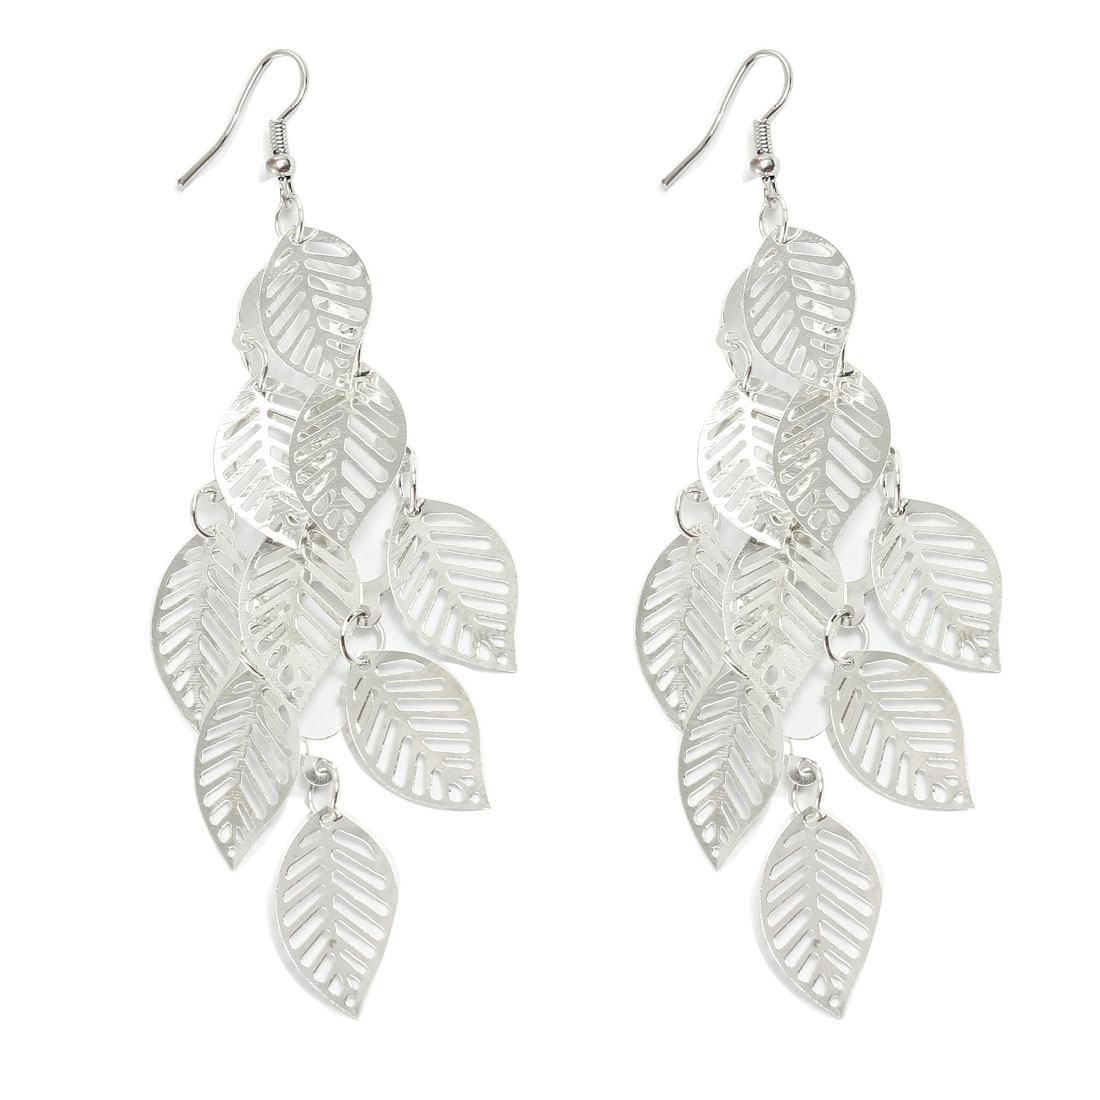 Women Silver Tone Hollow Leaf Accent Dangling Hook Earrings Eardrop Pair